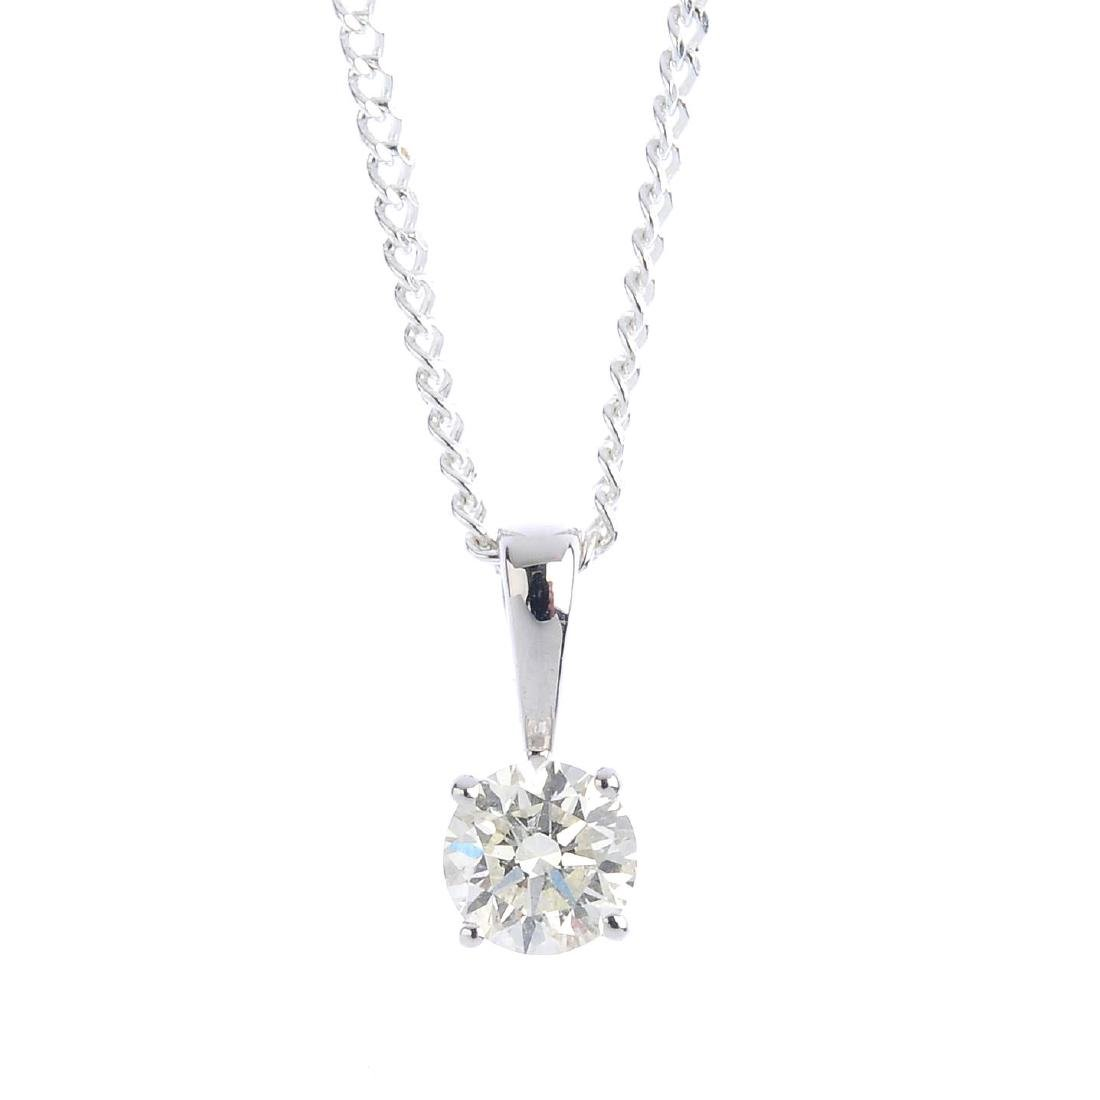 An 18ct gold diamond single-stone pendant. The